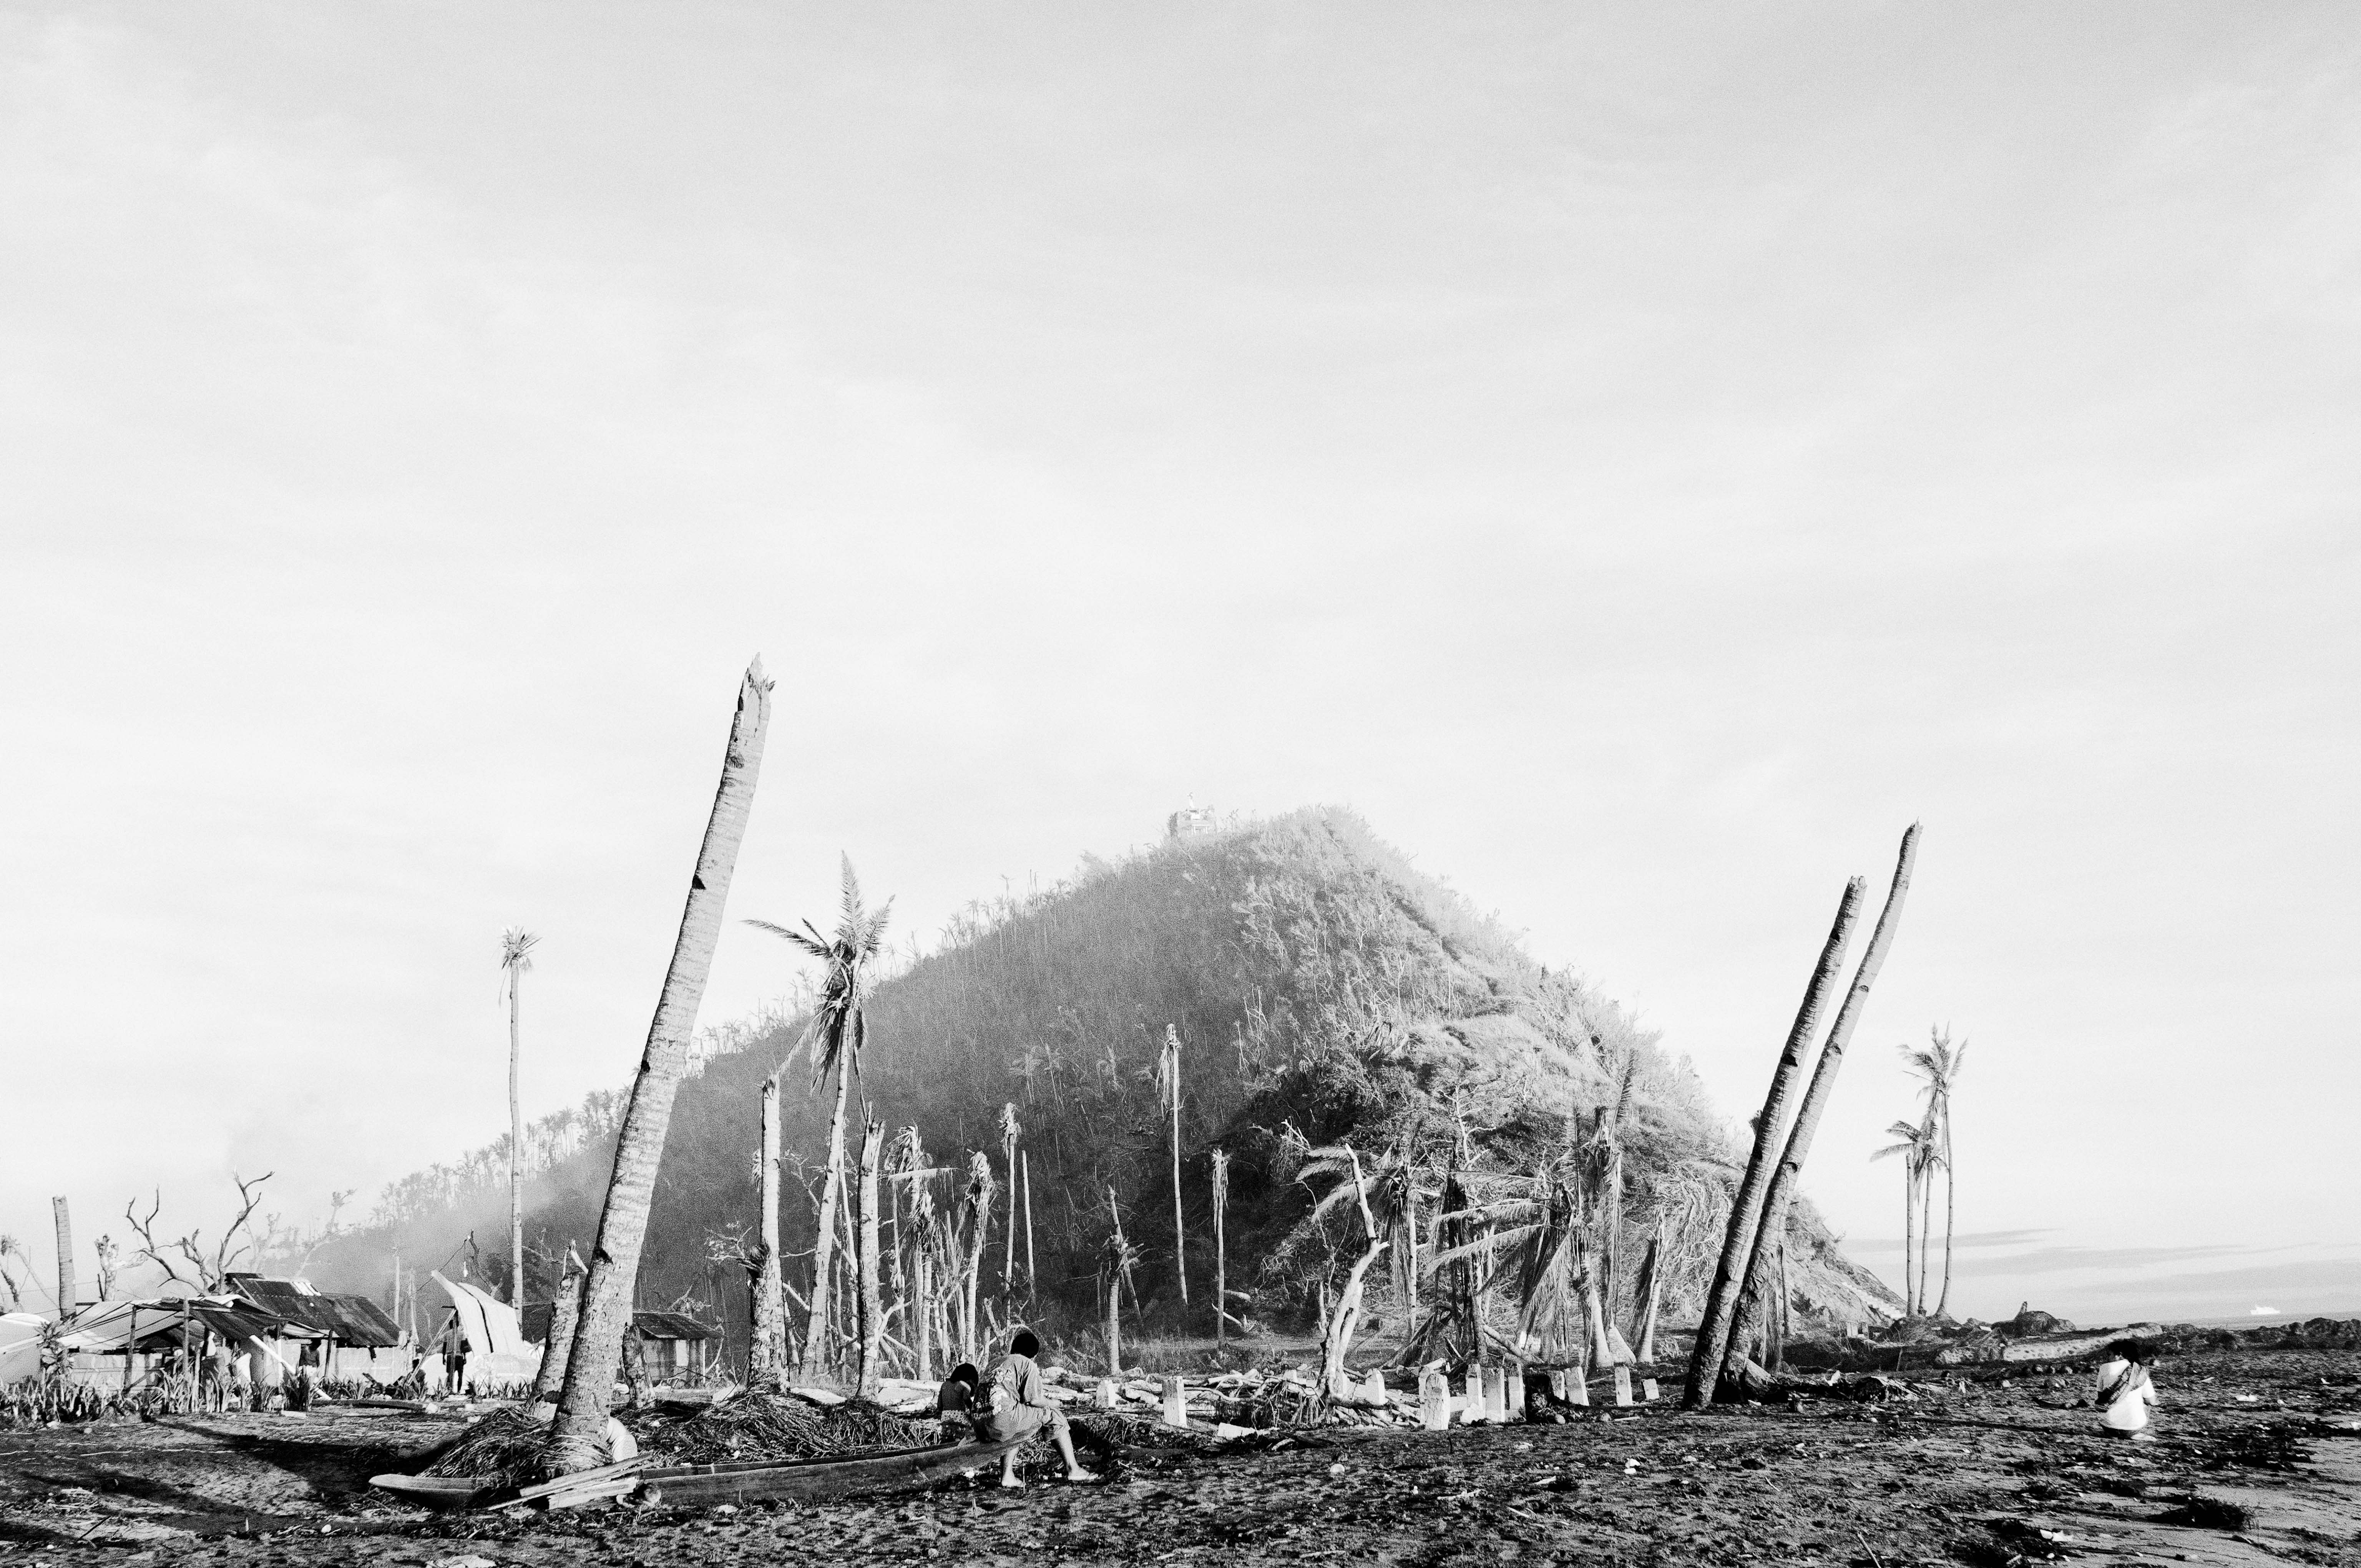 The coast of Tanauan in Leyte, Philippines, on Dec. 10, 2013 after Typhoon Haiyan, known locally as Typhoon Yolanda, struck the area.